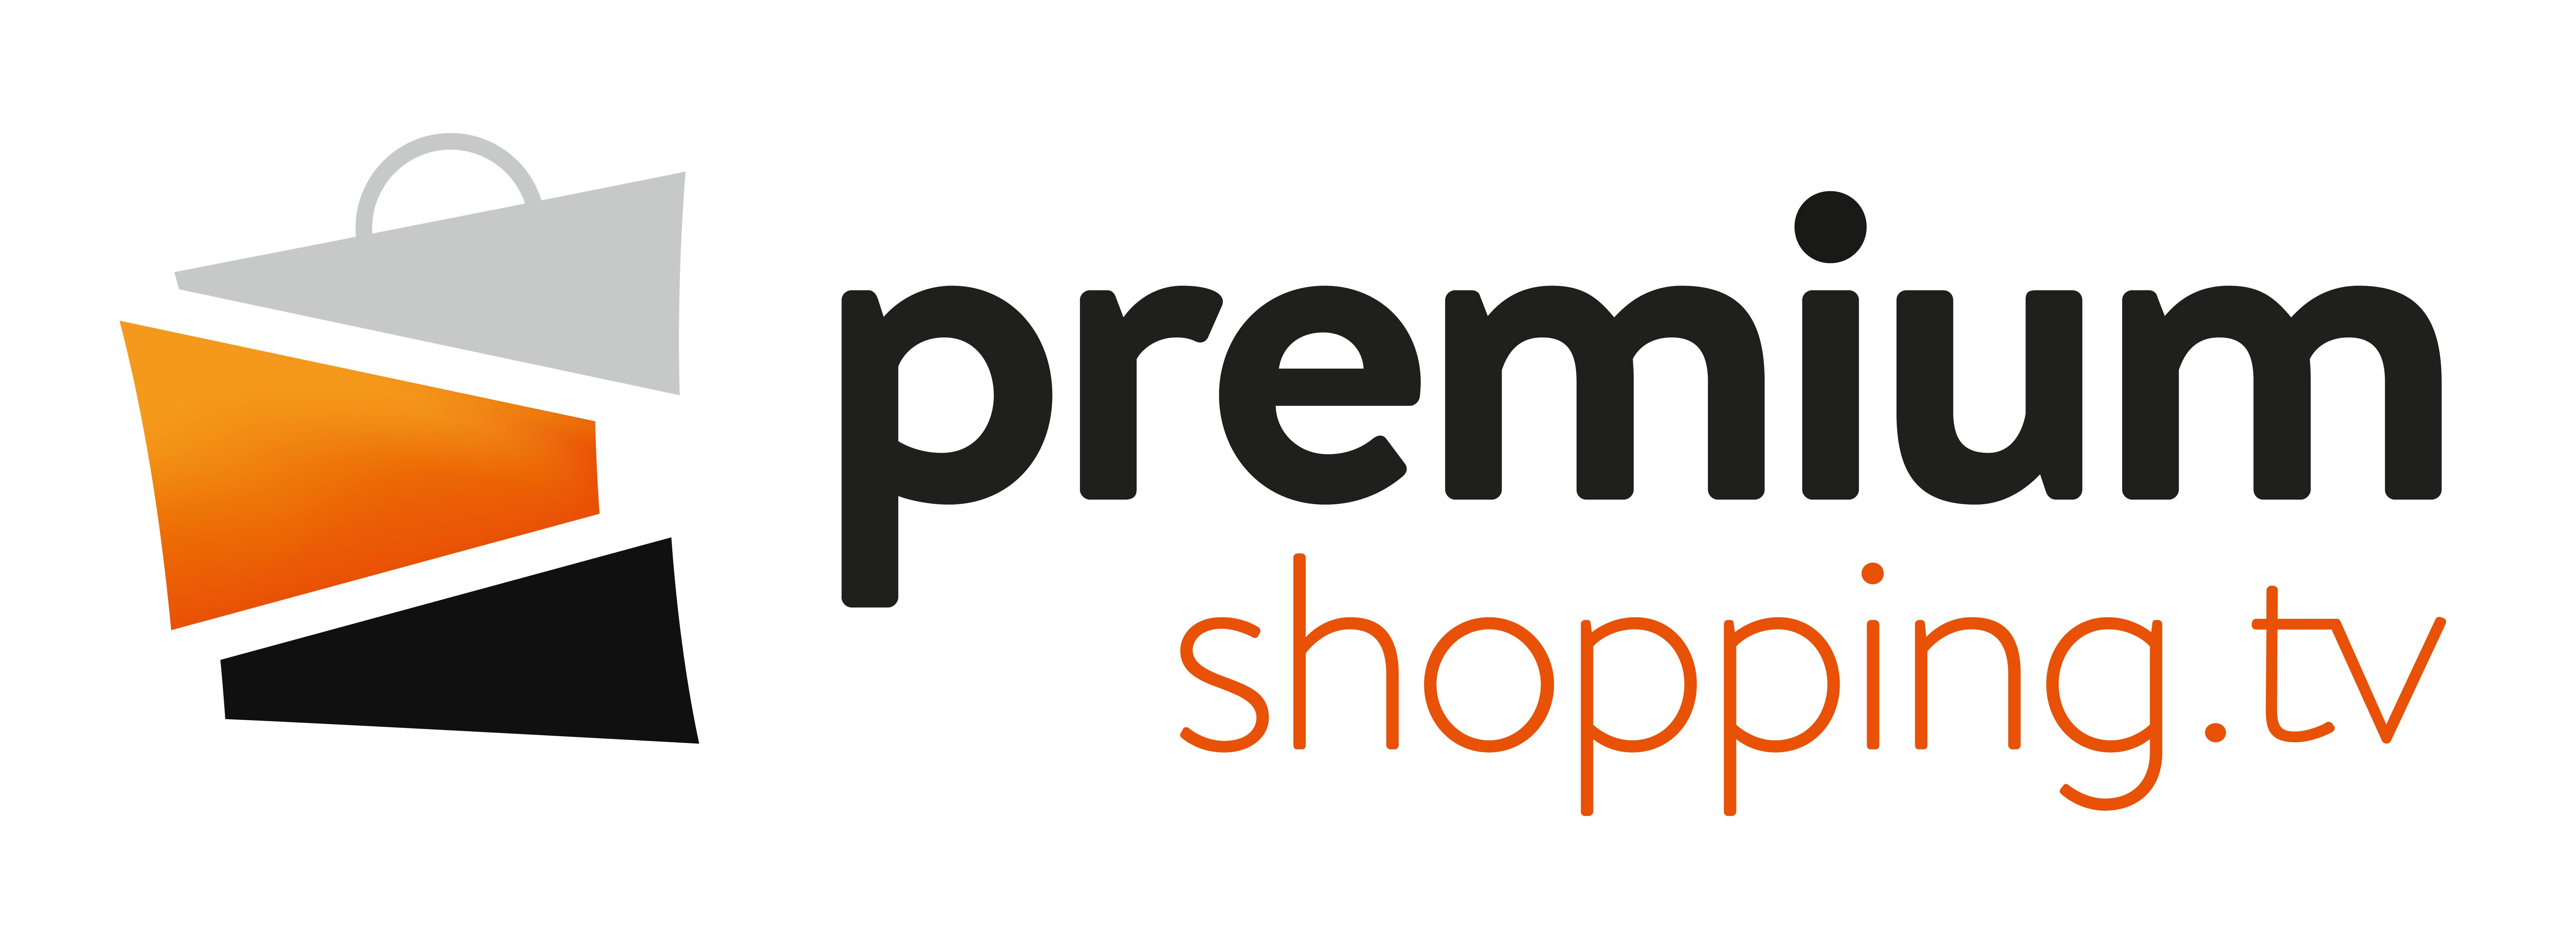 premiumshopping.tv